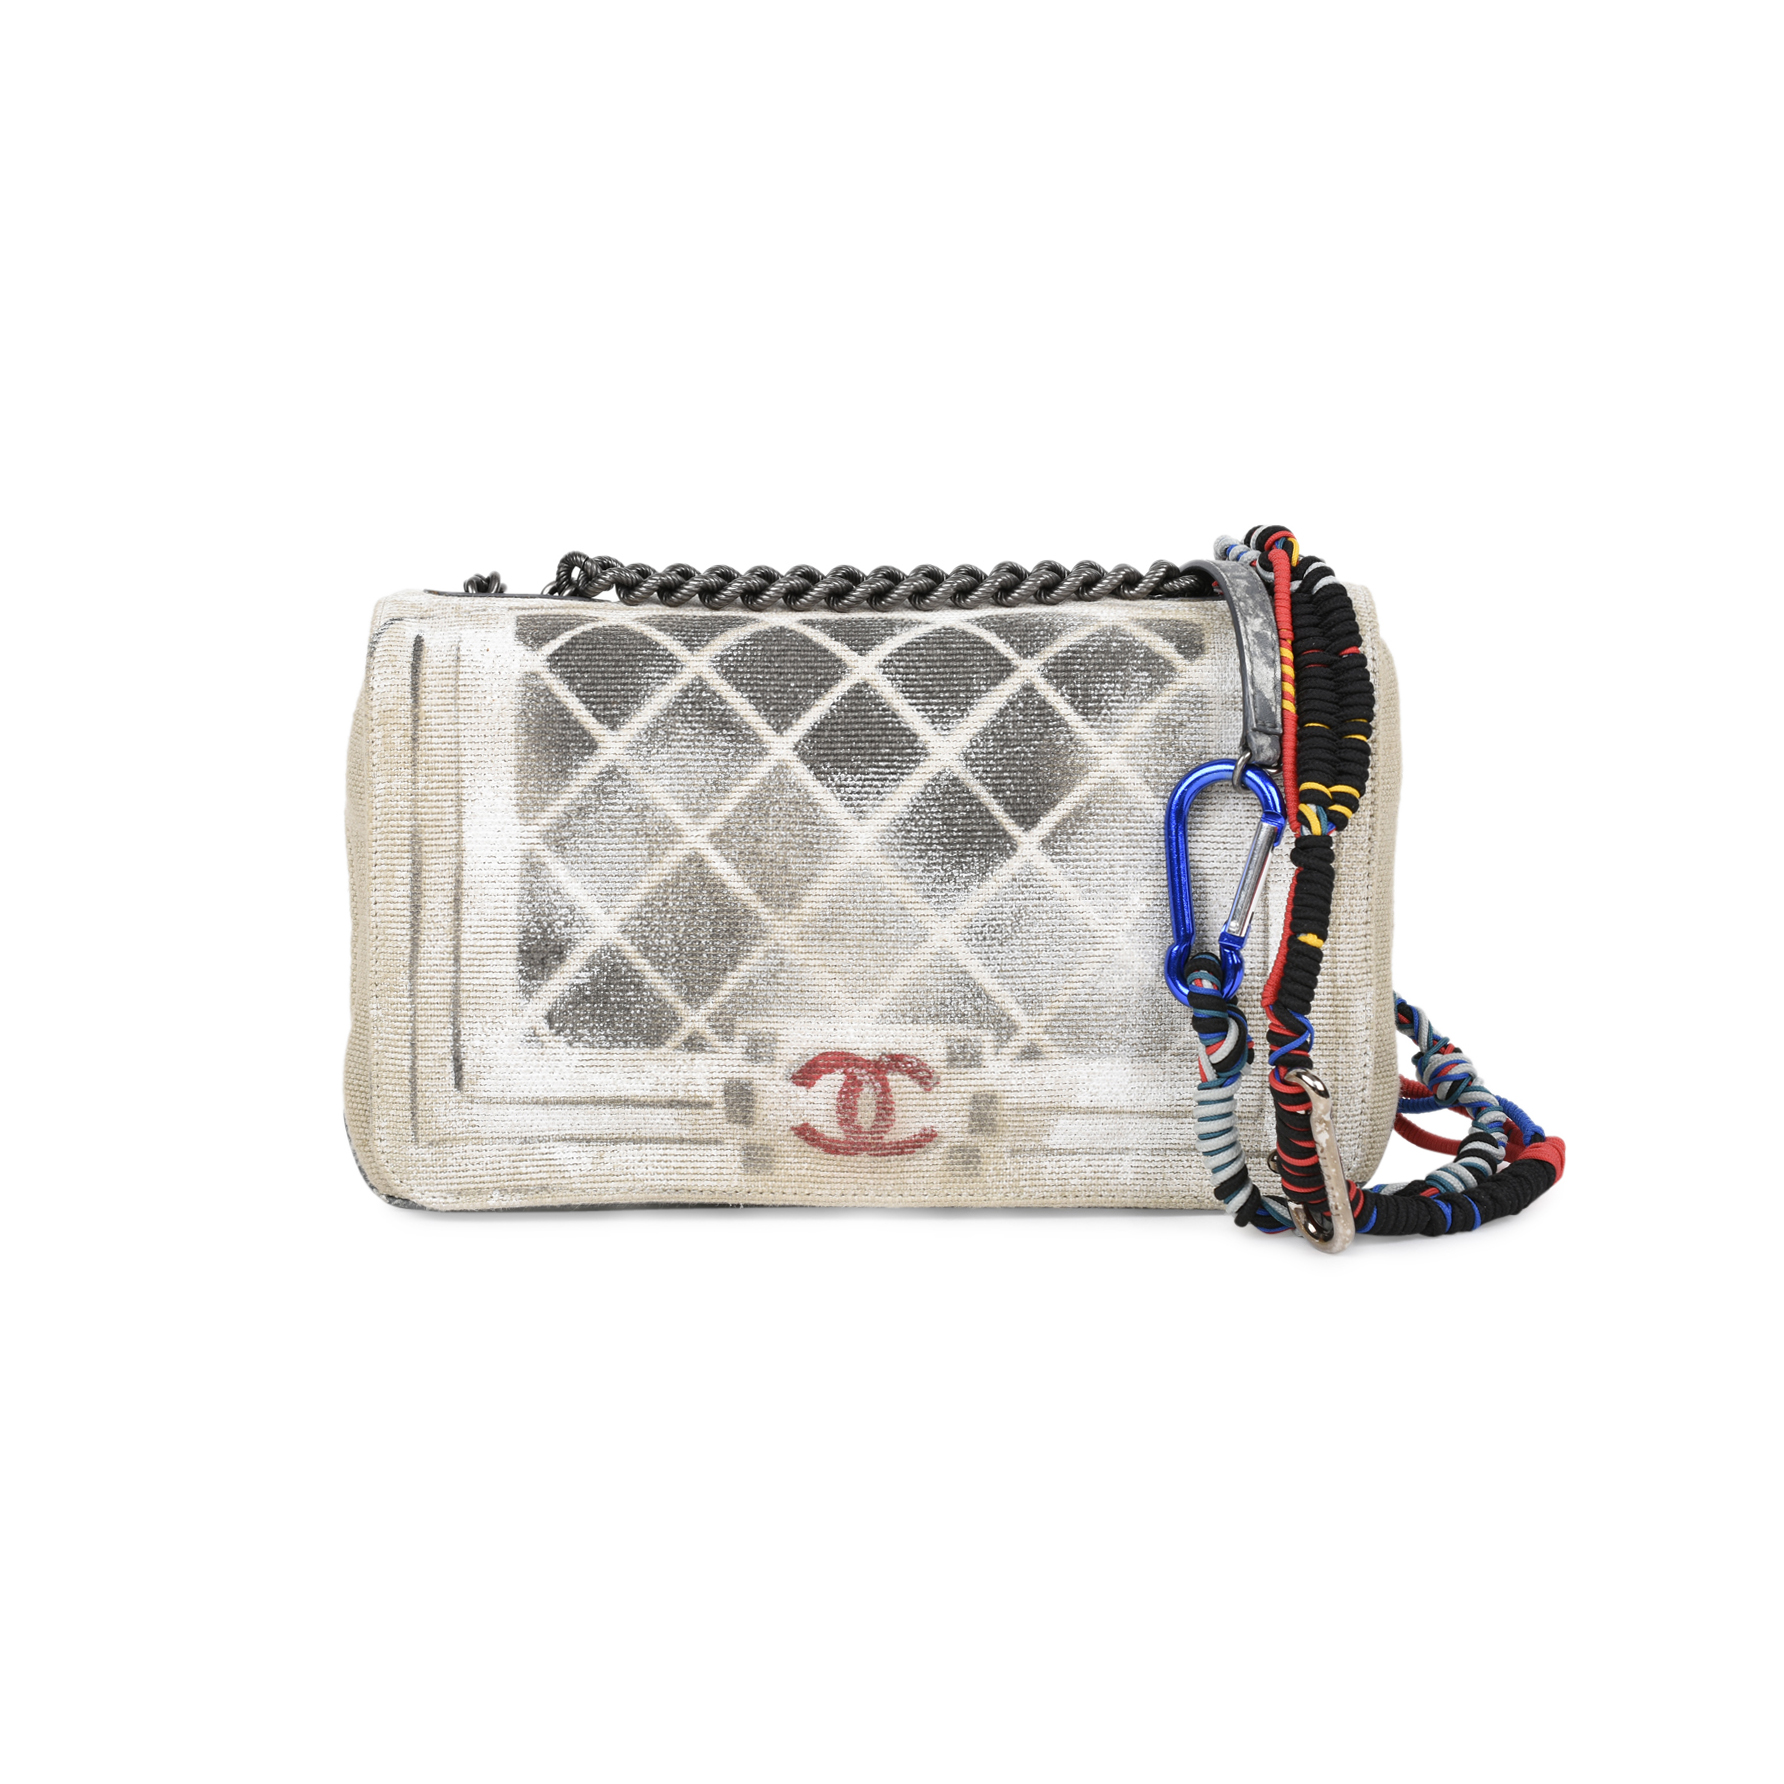 ac81dc568943 Authentic Second Hand Chanel Oh My Boy Graffiti Bag (PSS-515-00009) | THE  FIFTH COLLECTION